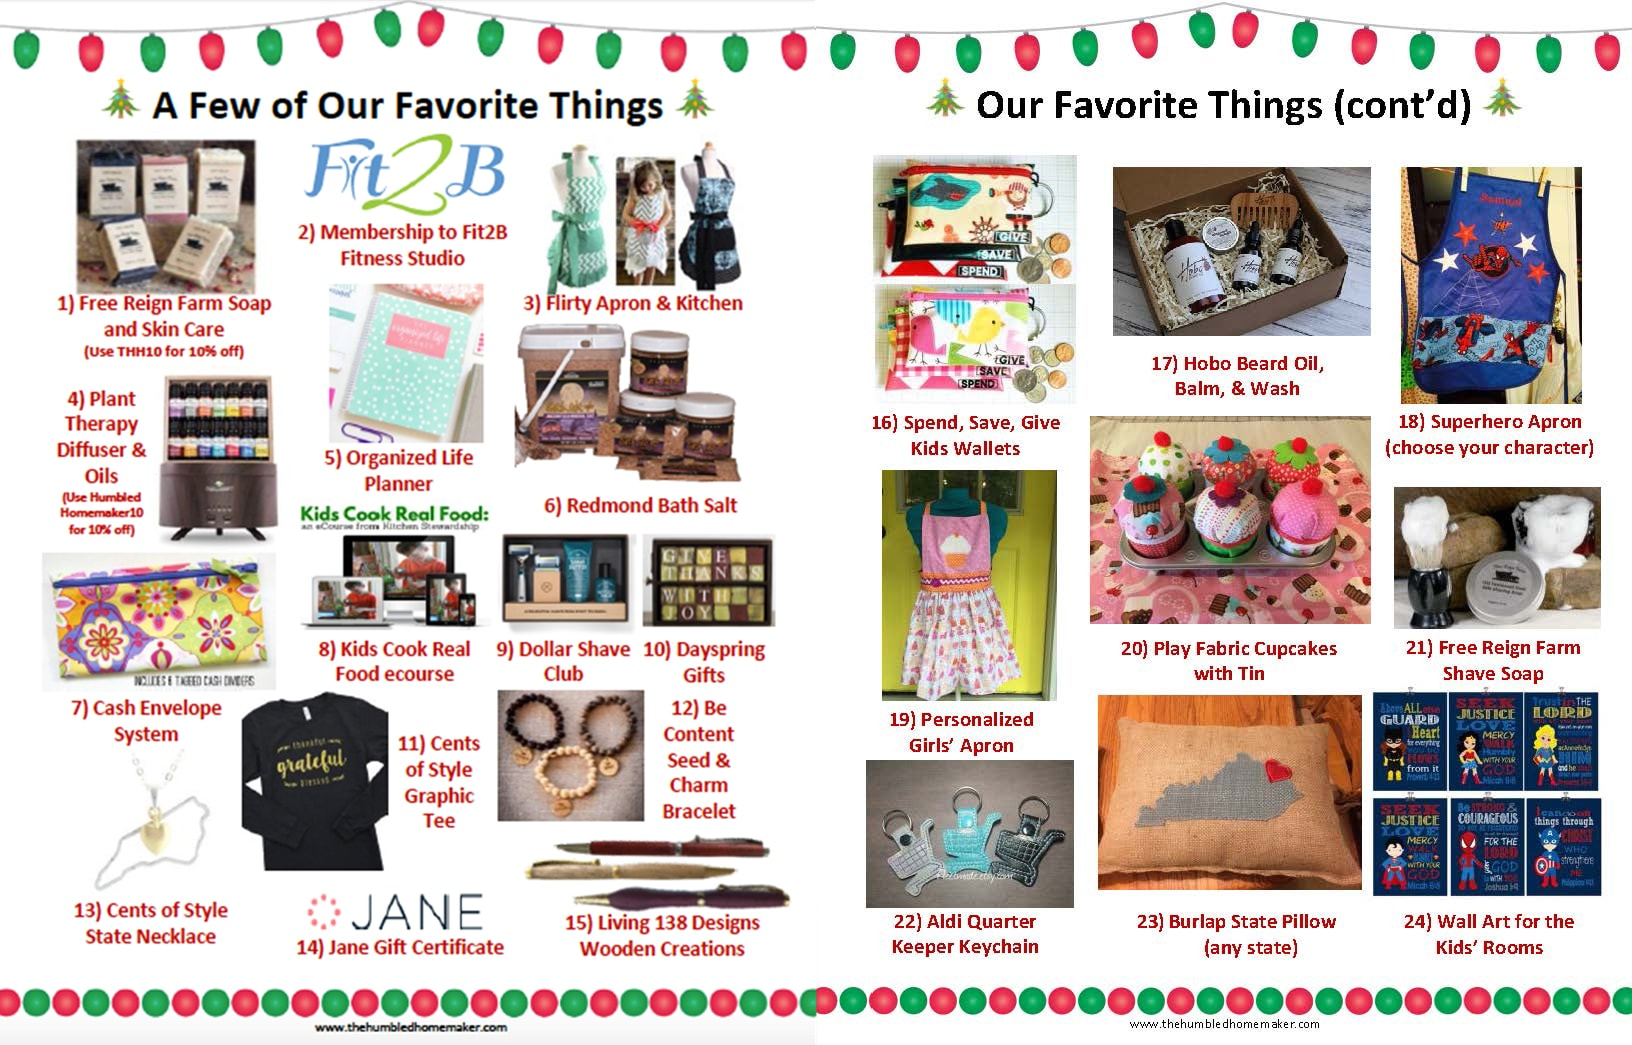 2017 Christmas Gift Guide for the Whole Family | Humbled Homemaker